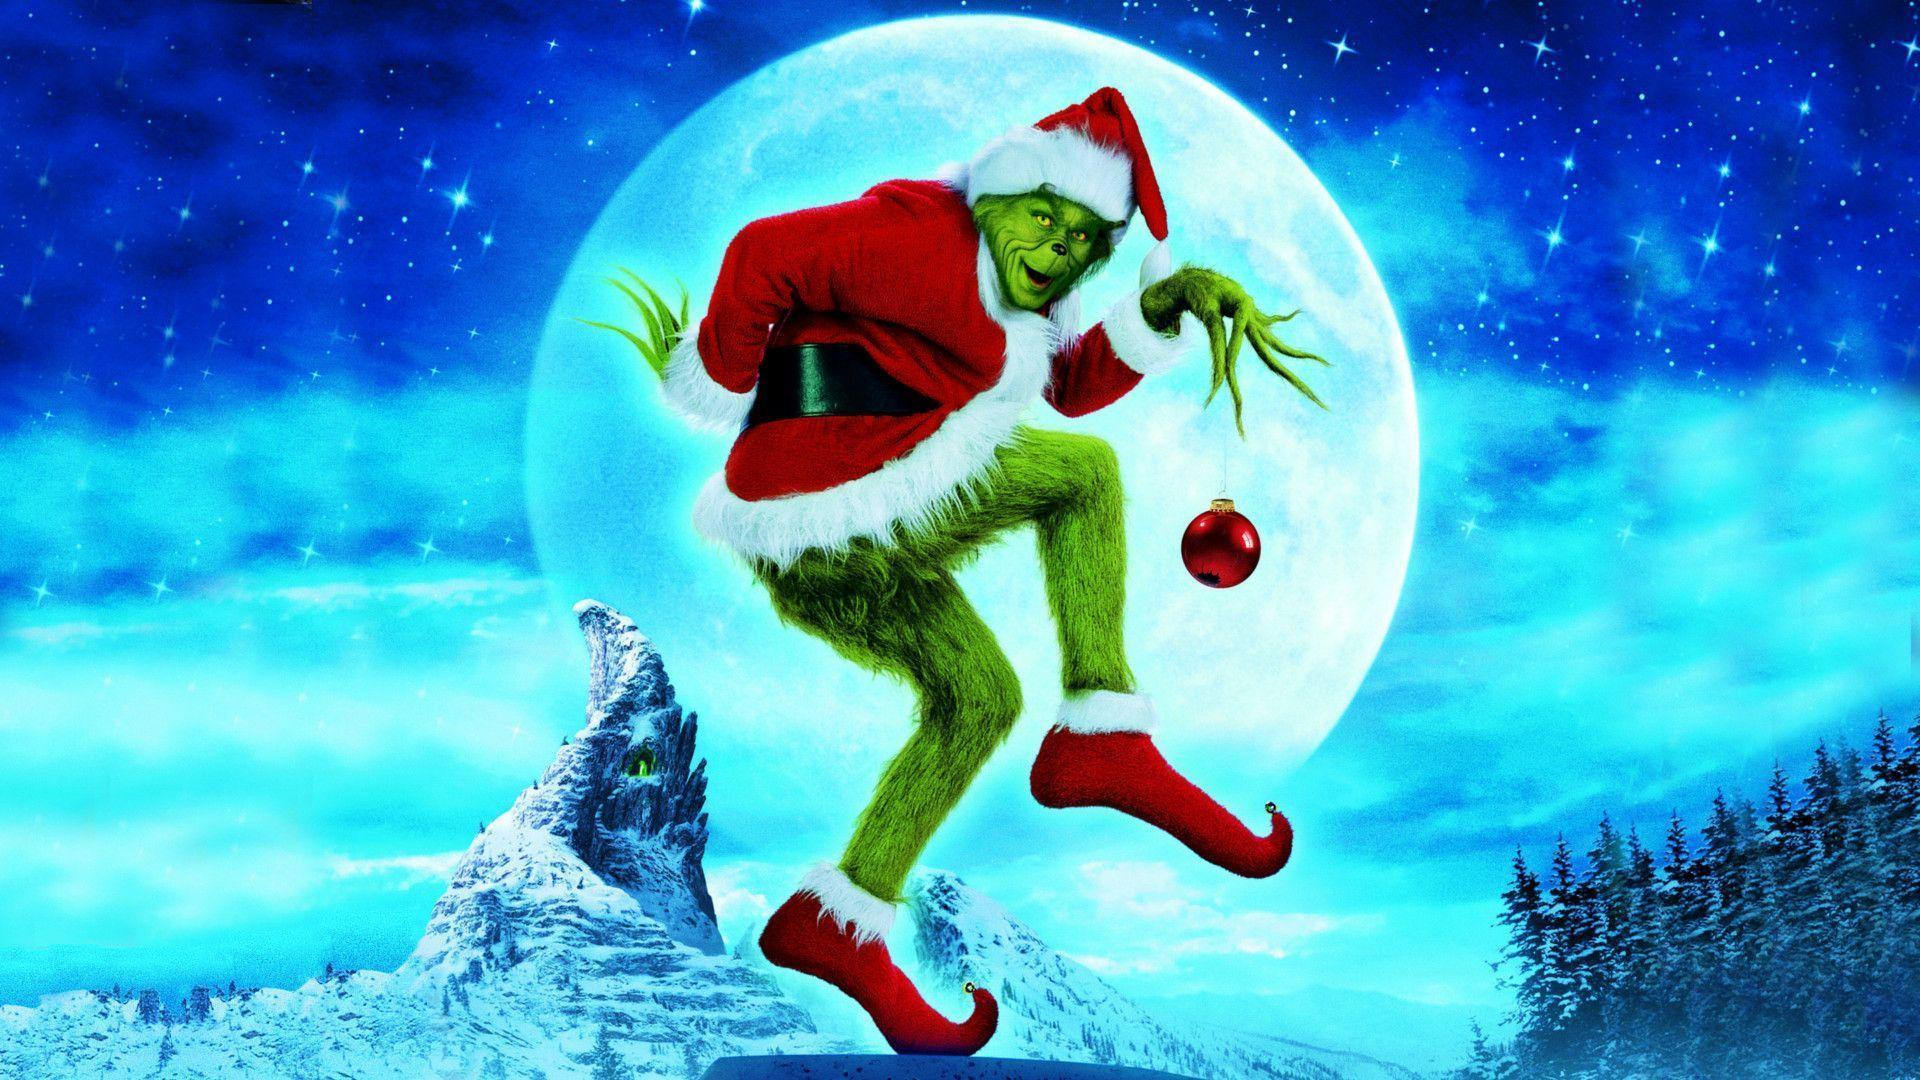 45 The Grinch Christmas Wallpapers   Download at WallpaperBro 1920x1080